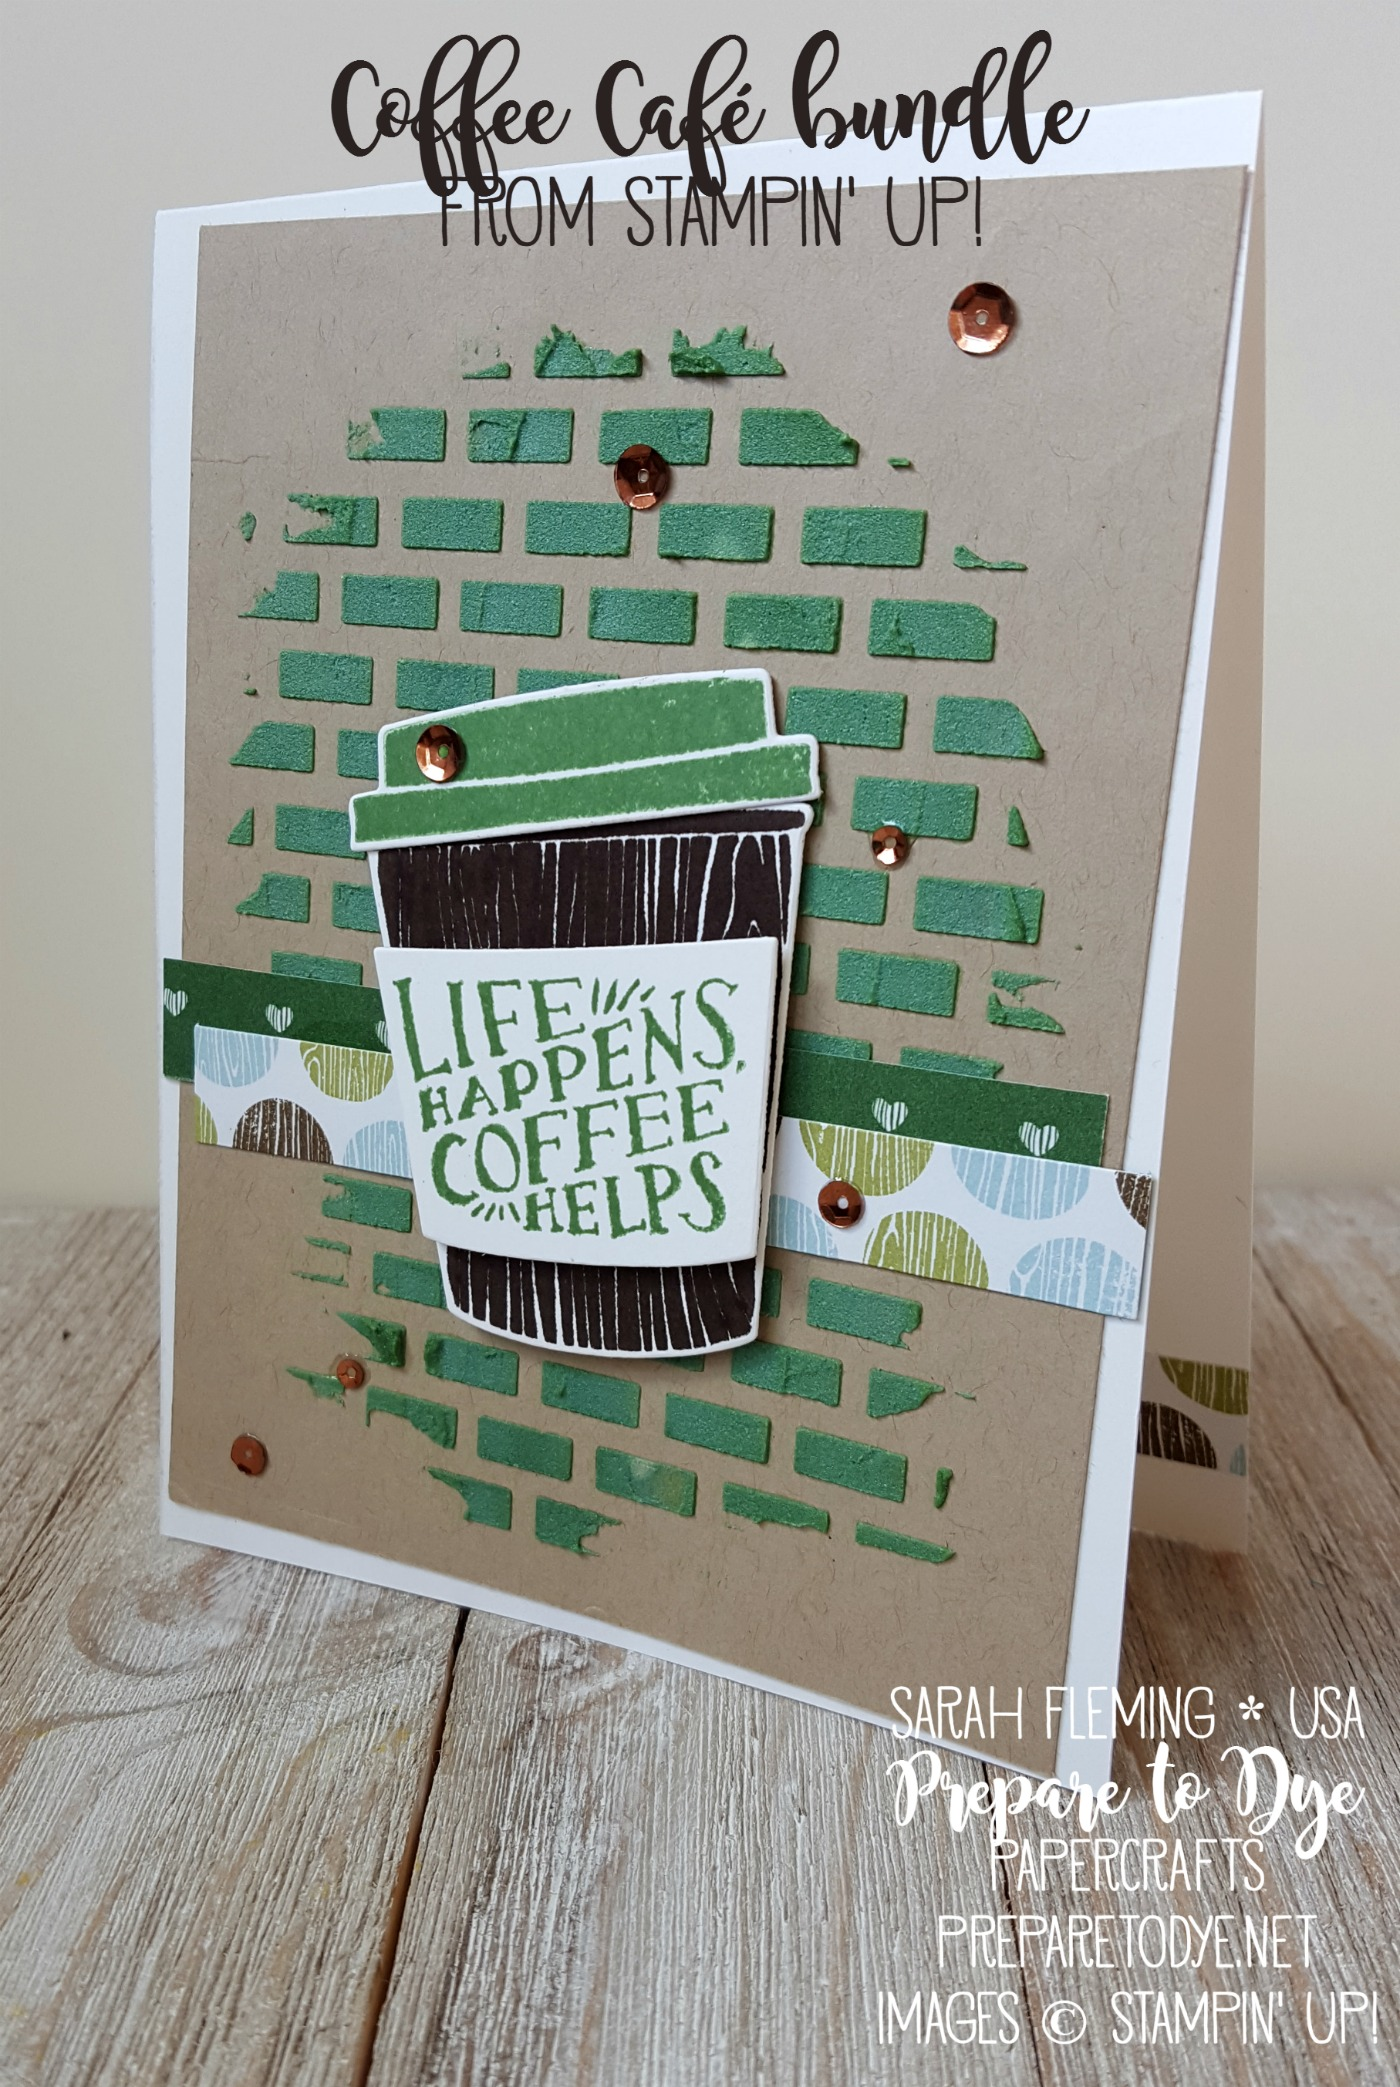 Stampin' Up! Coffee Café bundle with Coffee Break paper, embossing paste, and Metallics Sequin assortment - handmade coffee card - texture paste - Sarah Fleming - Prepare to Dye Papercrafts